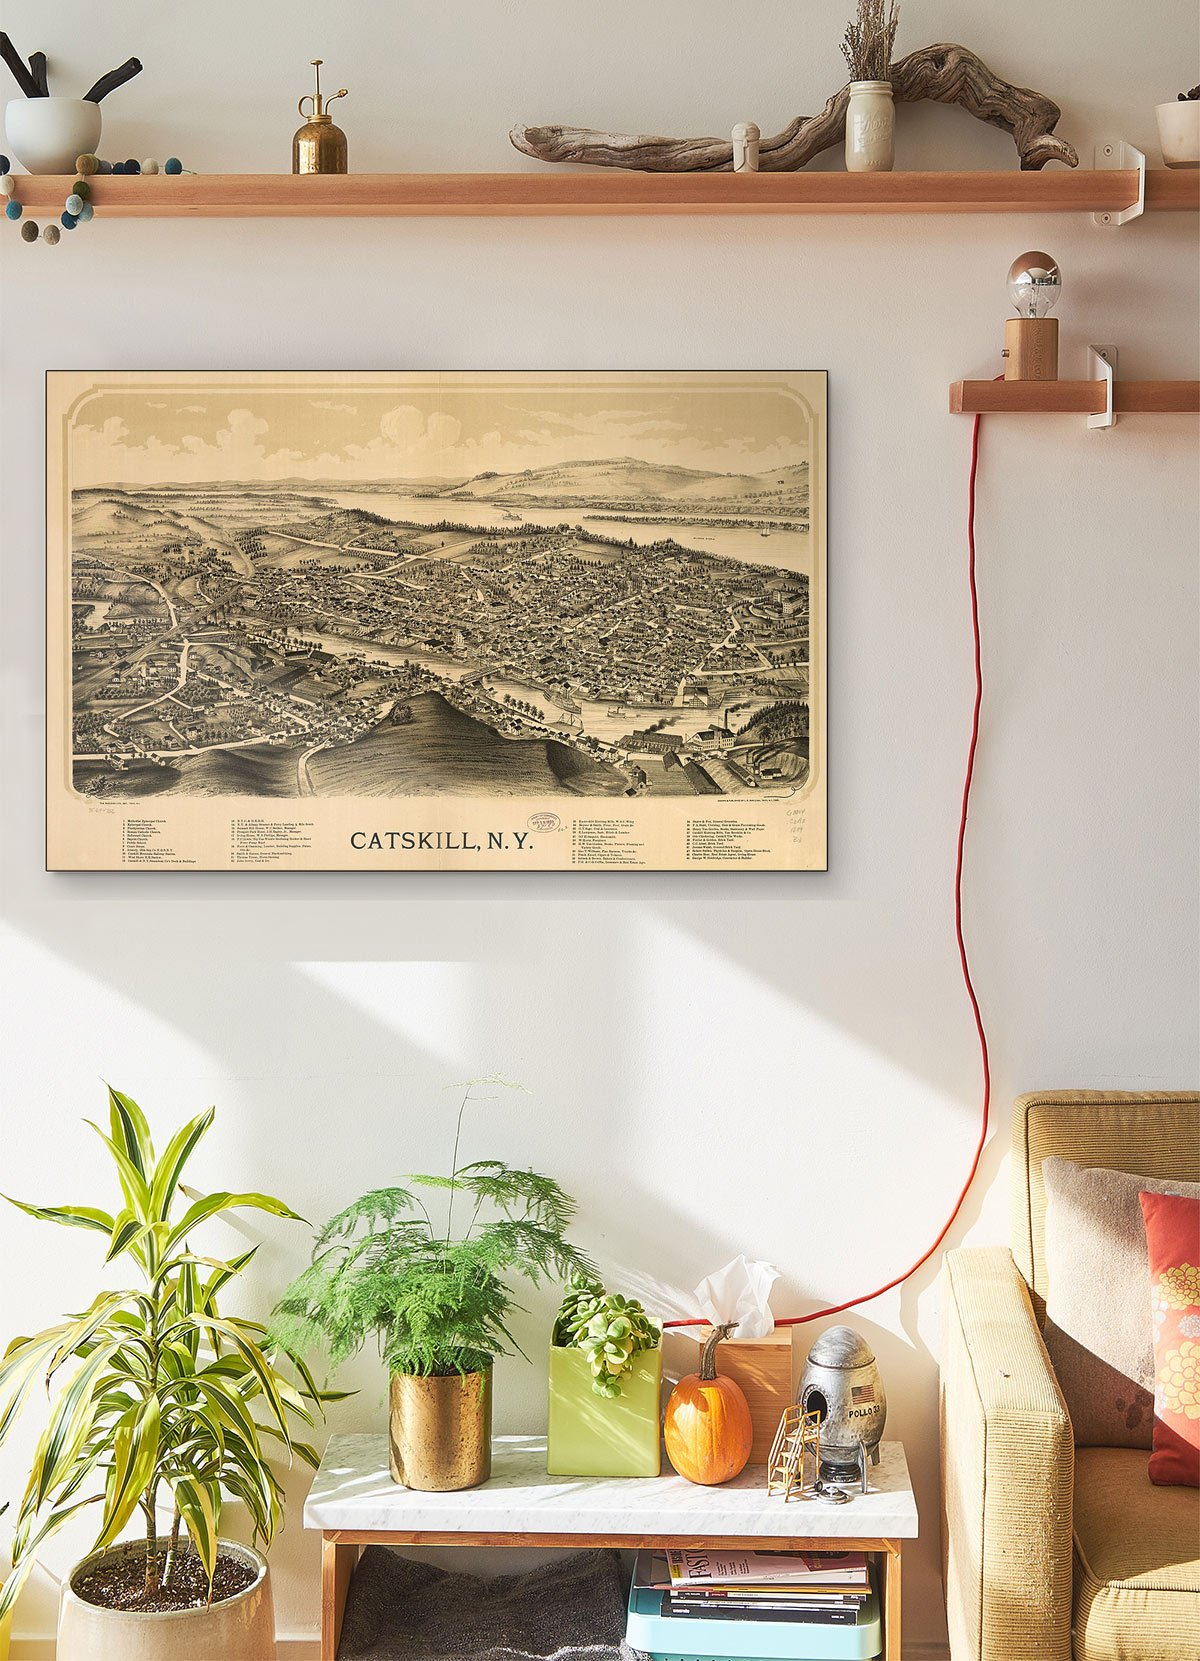 Catskill N.y LARGE Vintage Map